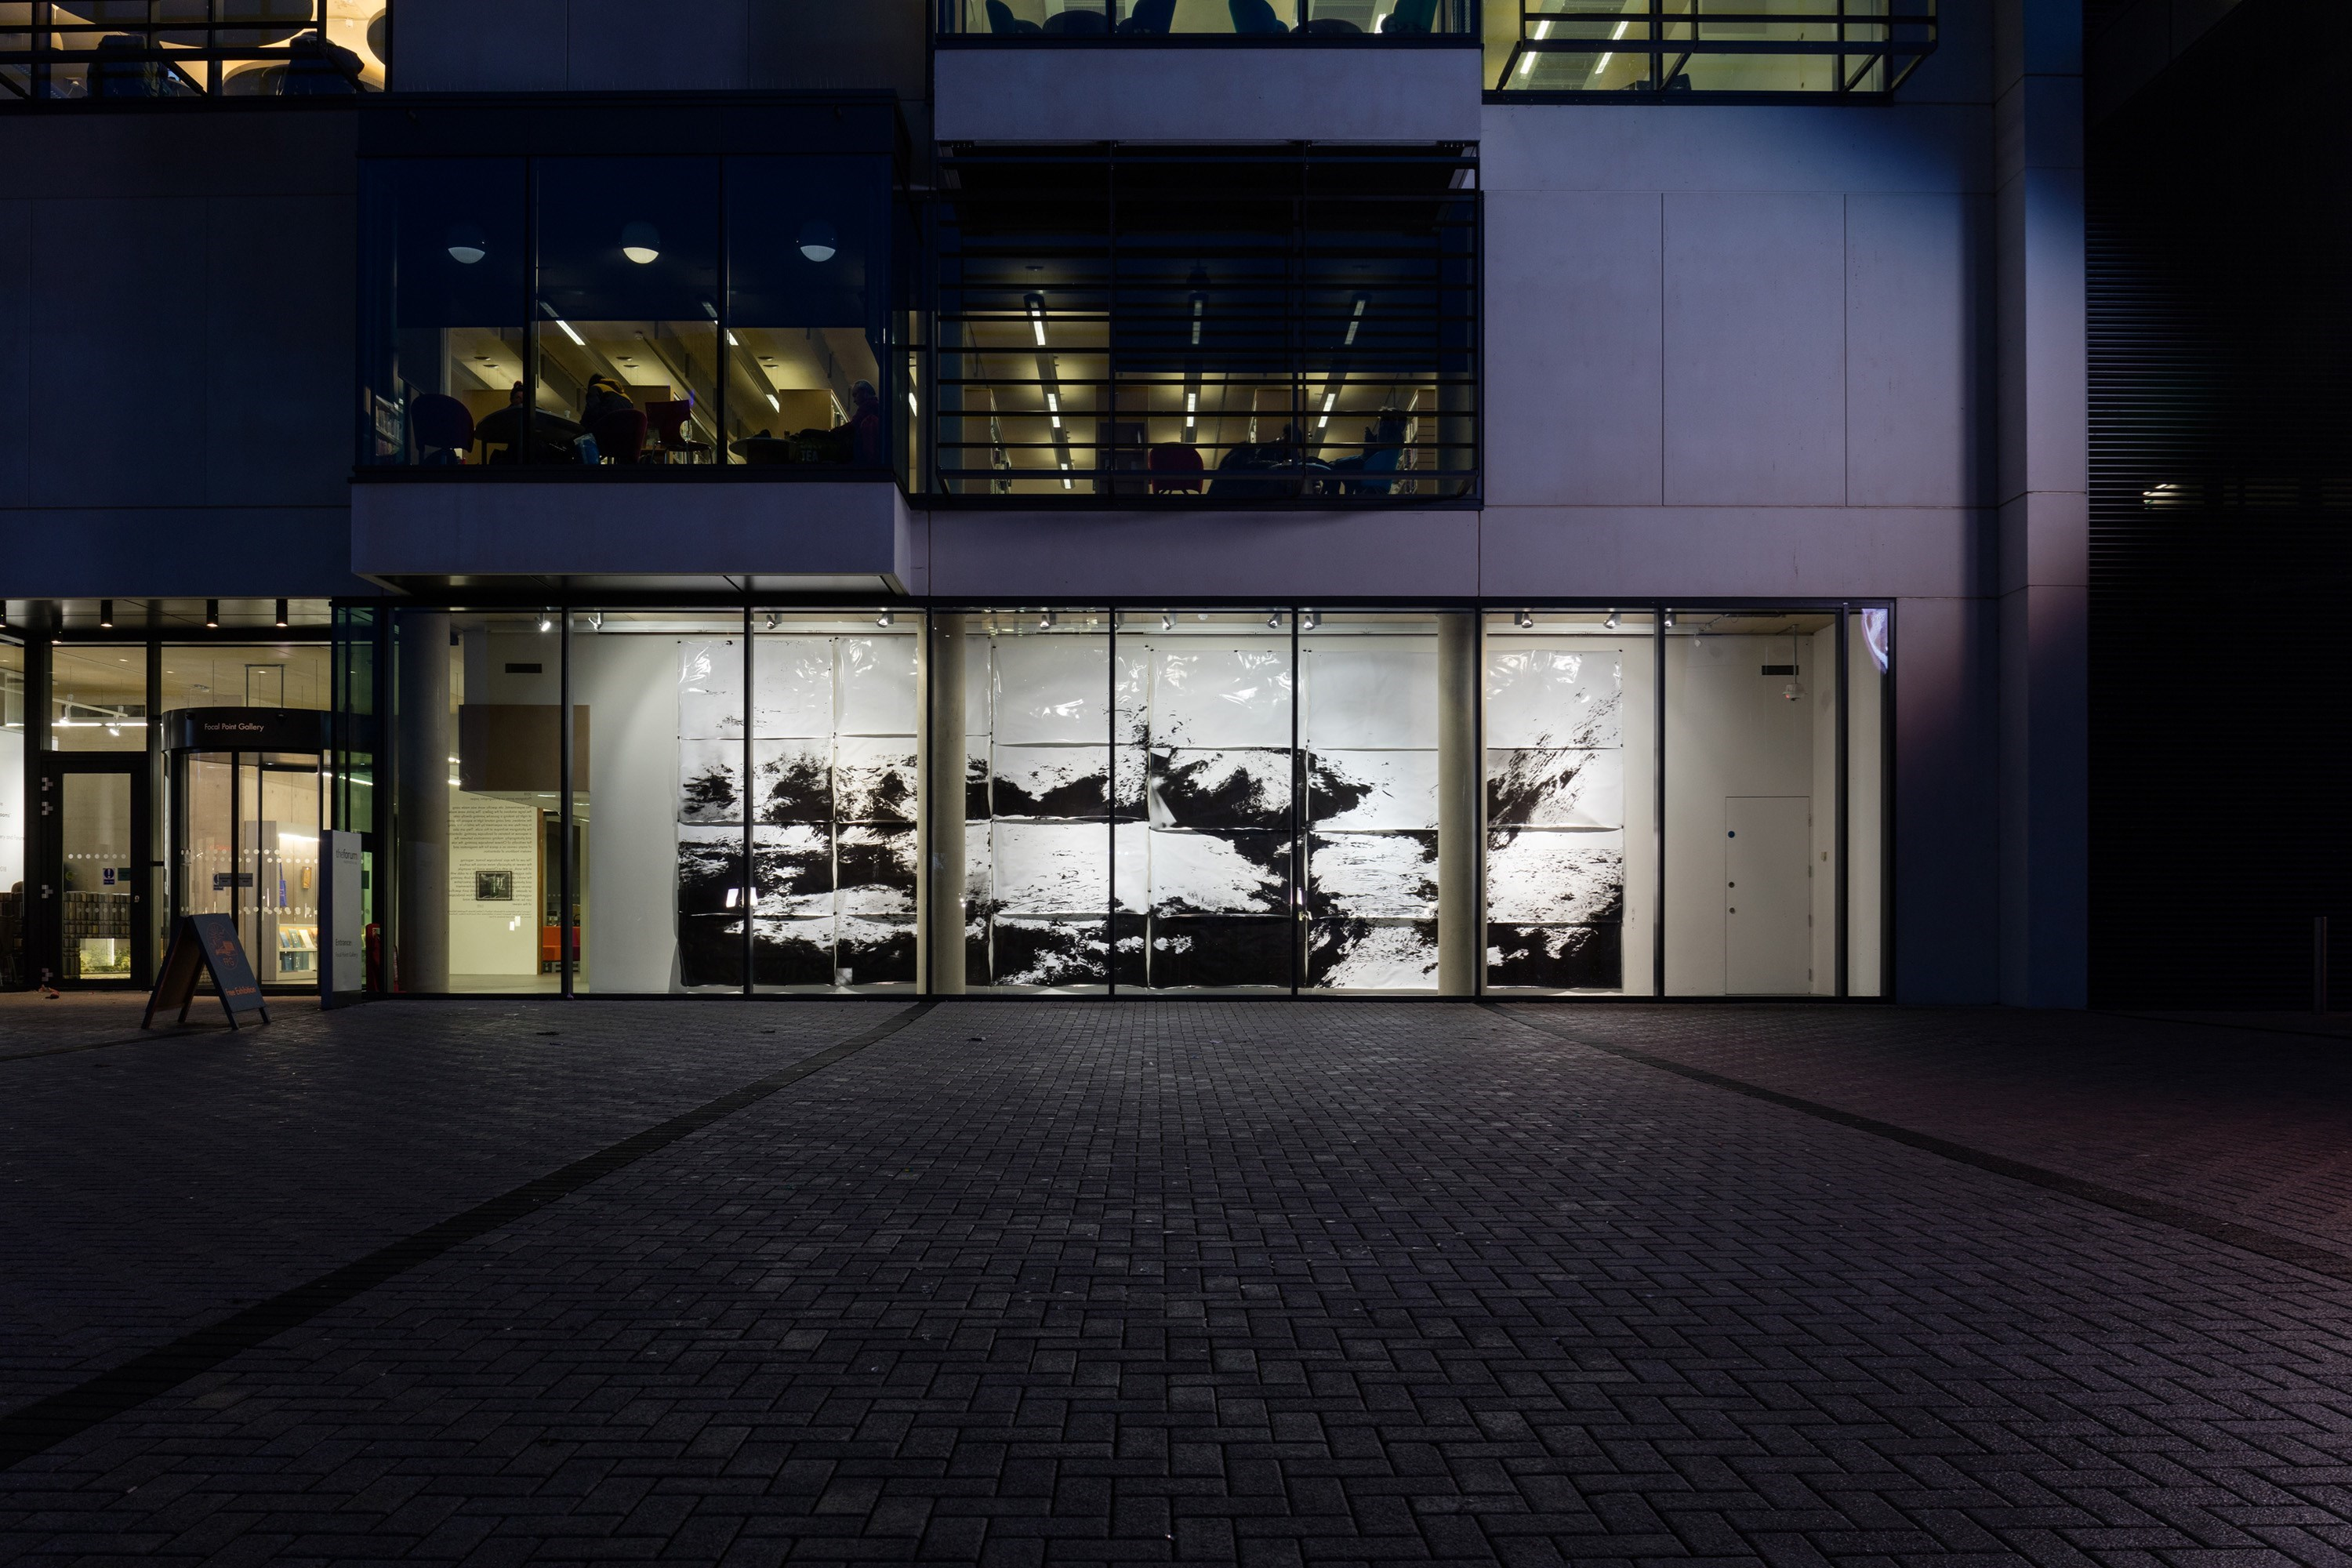 cliché verre<br />silver gelatine prints, ca. 400cm x 900cm<br />installation view Caprona, Focal Point Gallery, Southend, GB